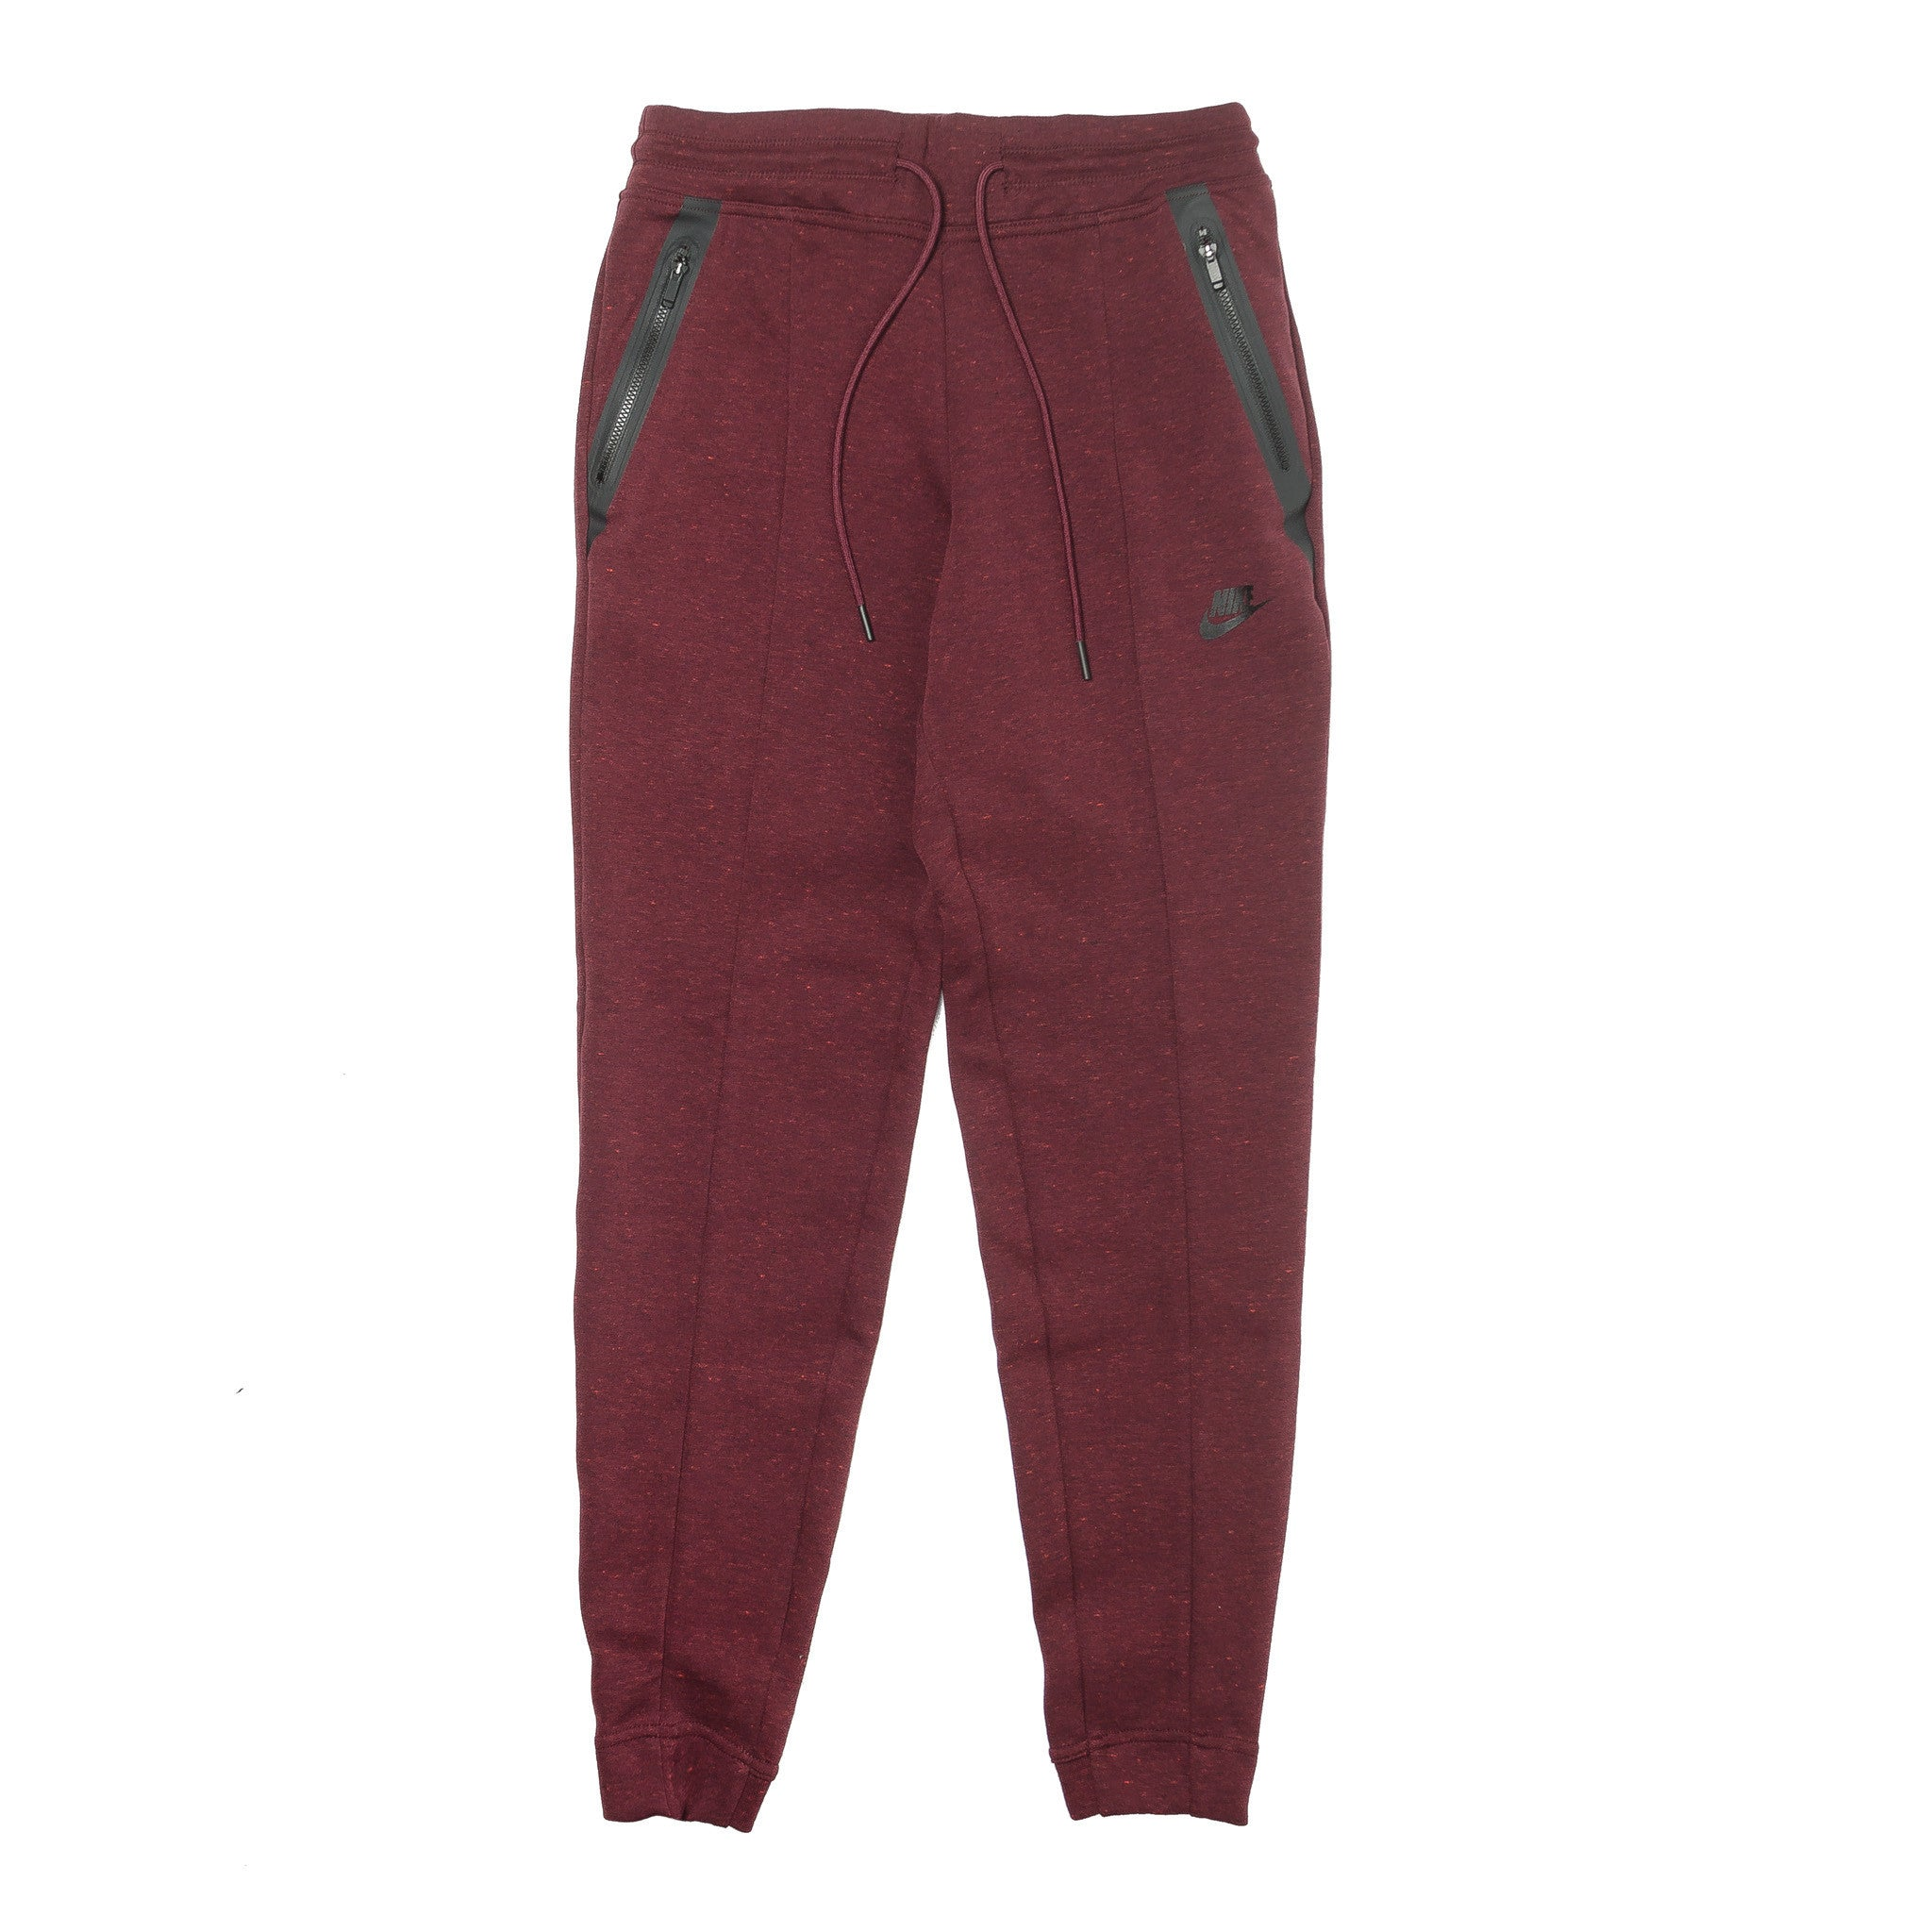 Wmns Tech Fleece Pant 803575-681 Burgundy